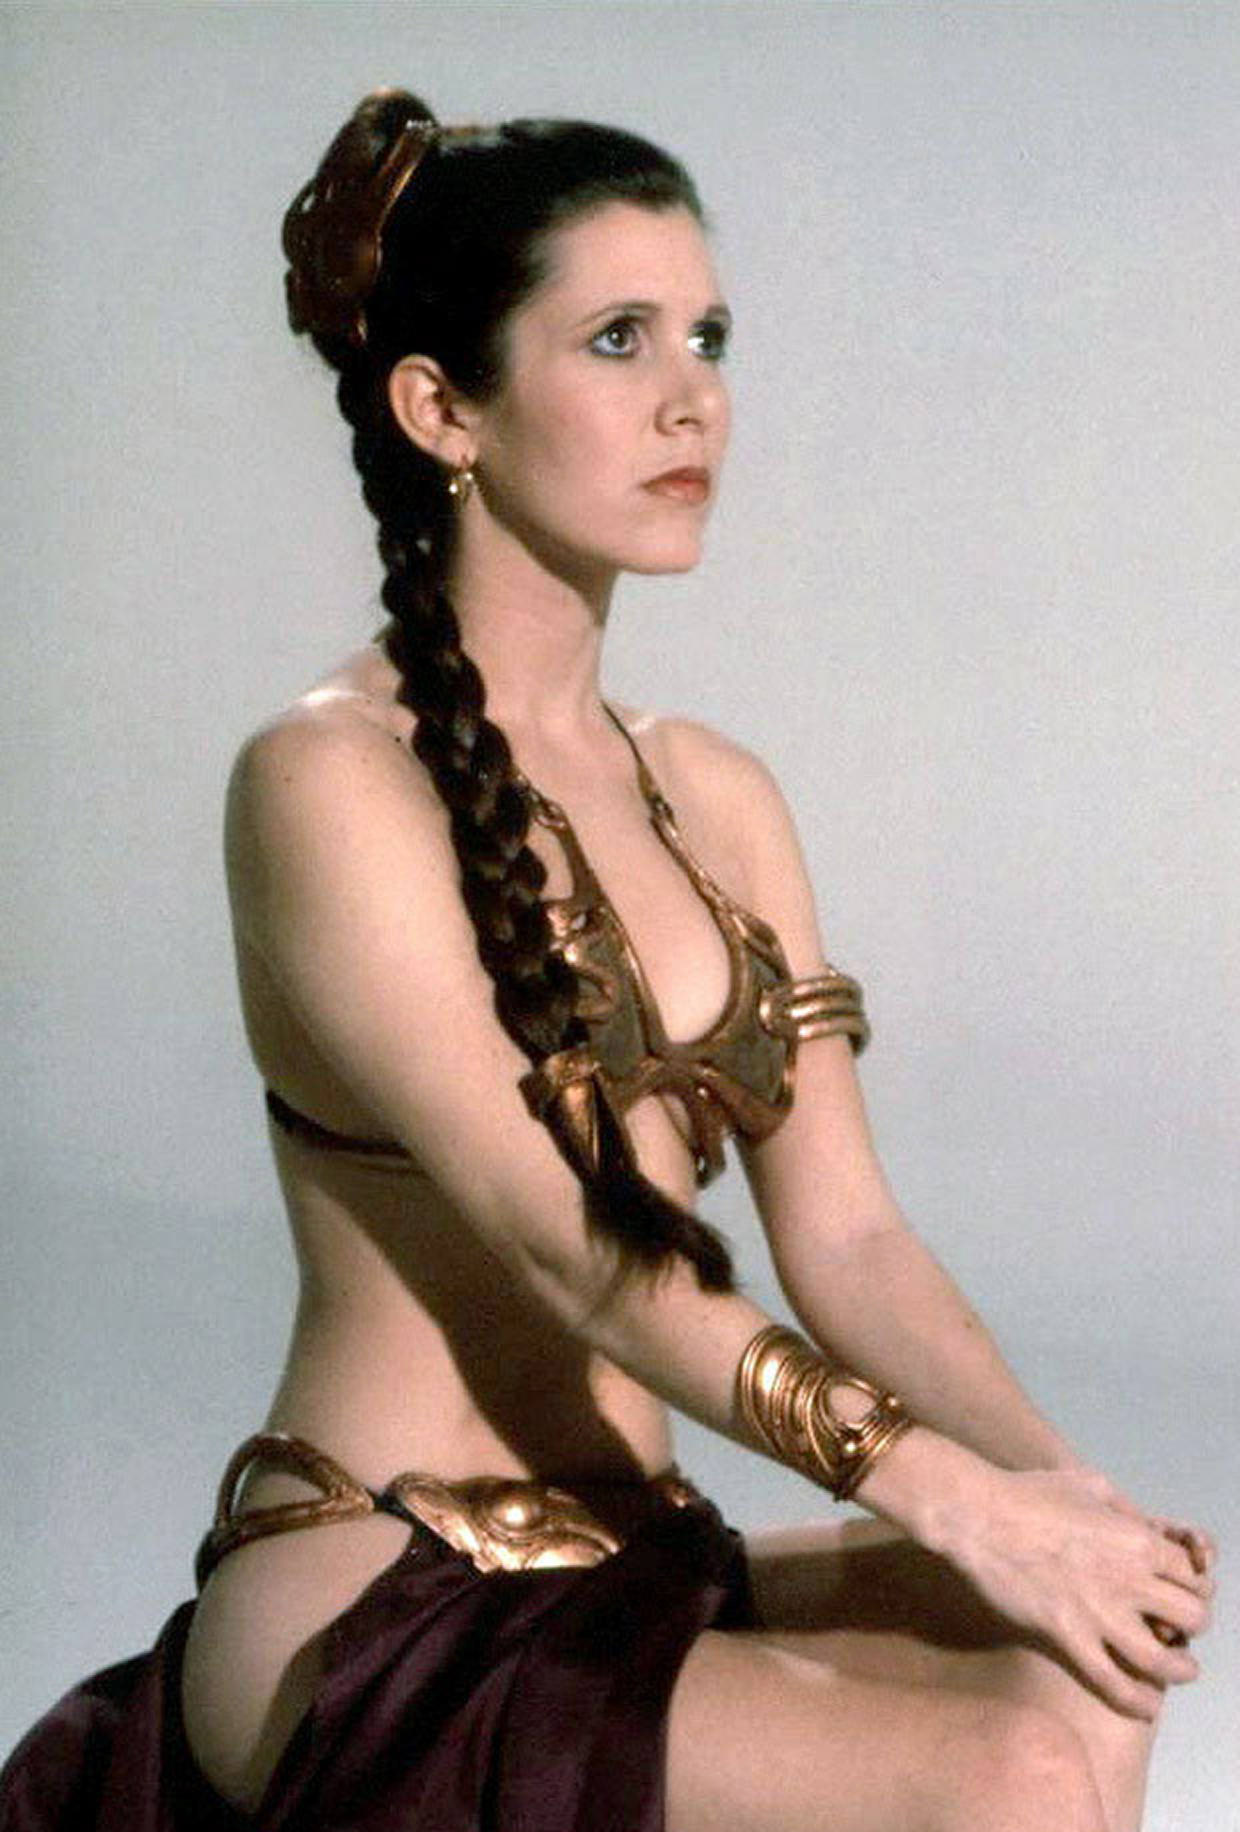 Carrie fisher bikini pics not pay